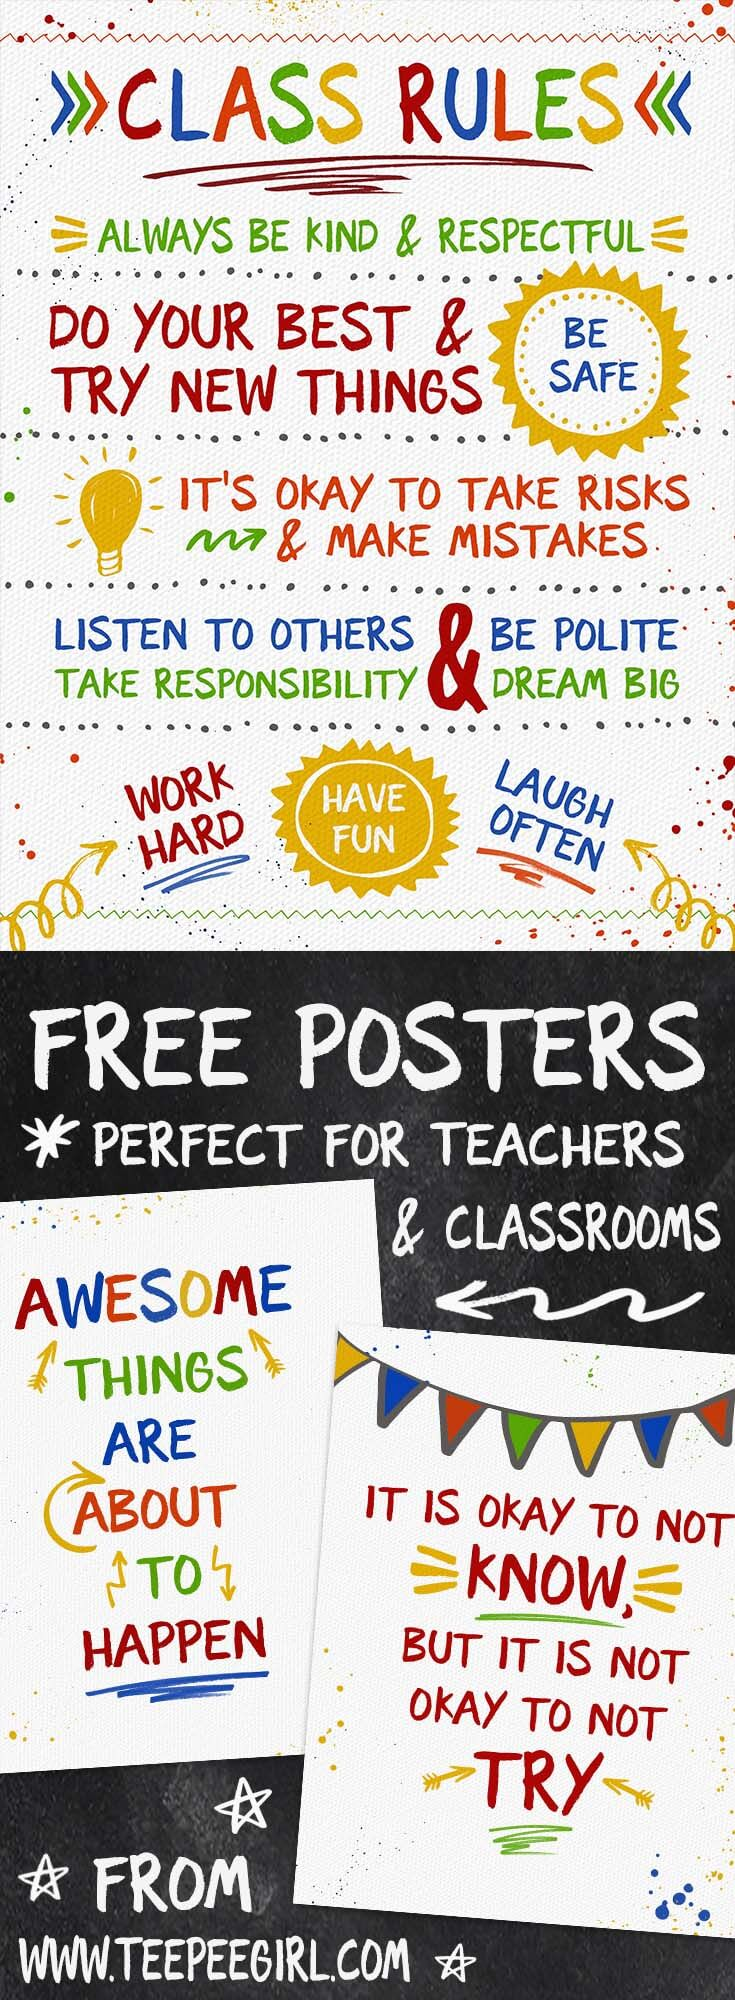 These free posters are perfect for classrooms, as teacher appreciation gifts, or anywhere you need some inspiration! www.TeepeeGirl.com